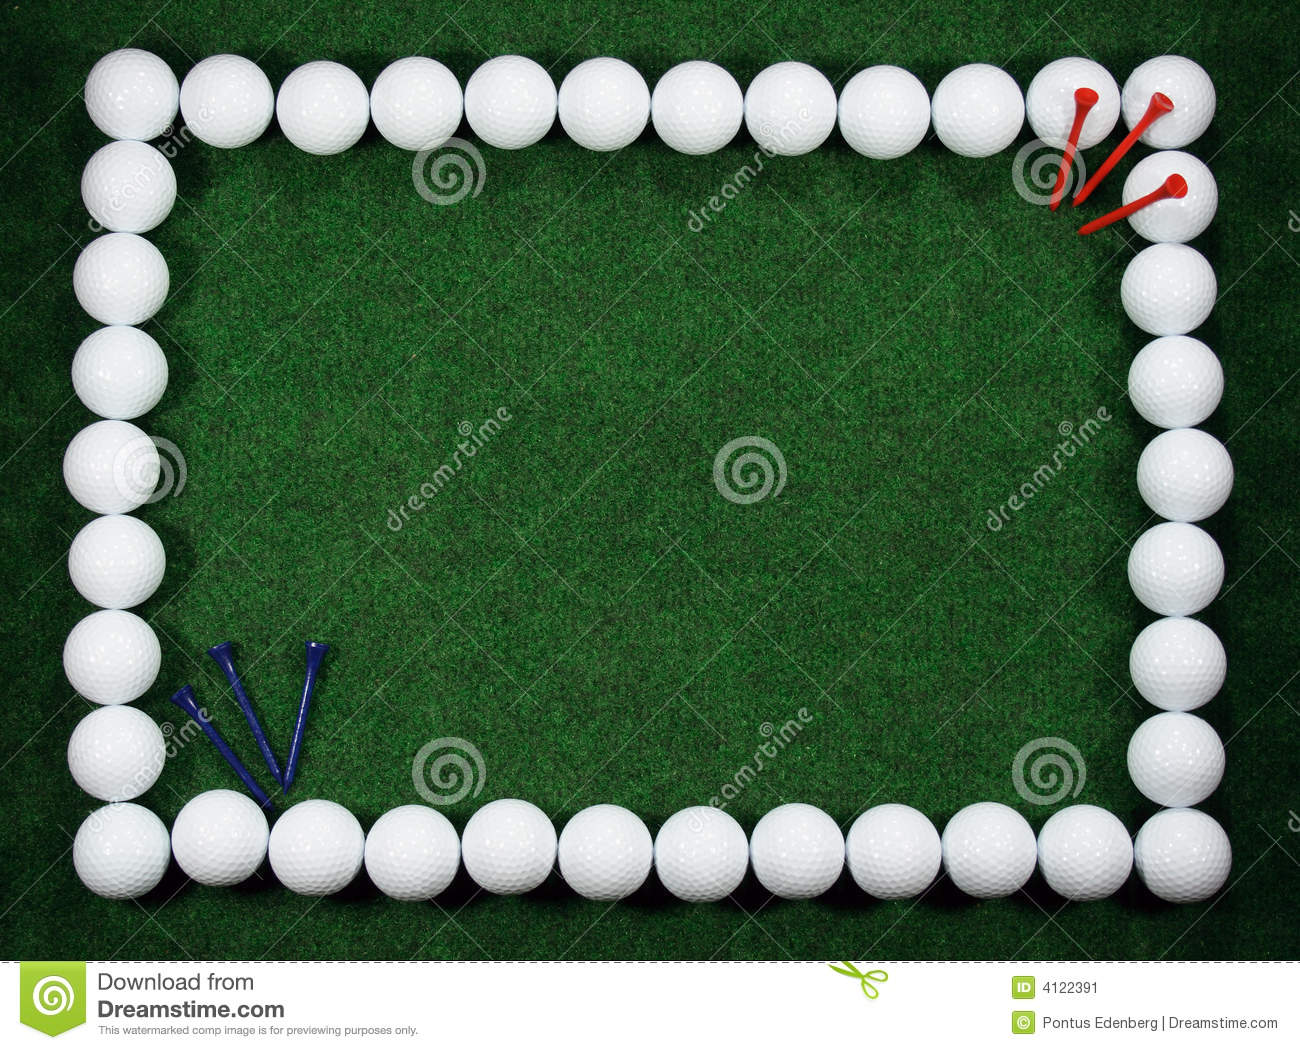 Golf frame with balls and pegs